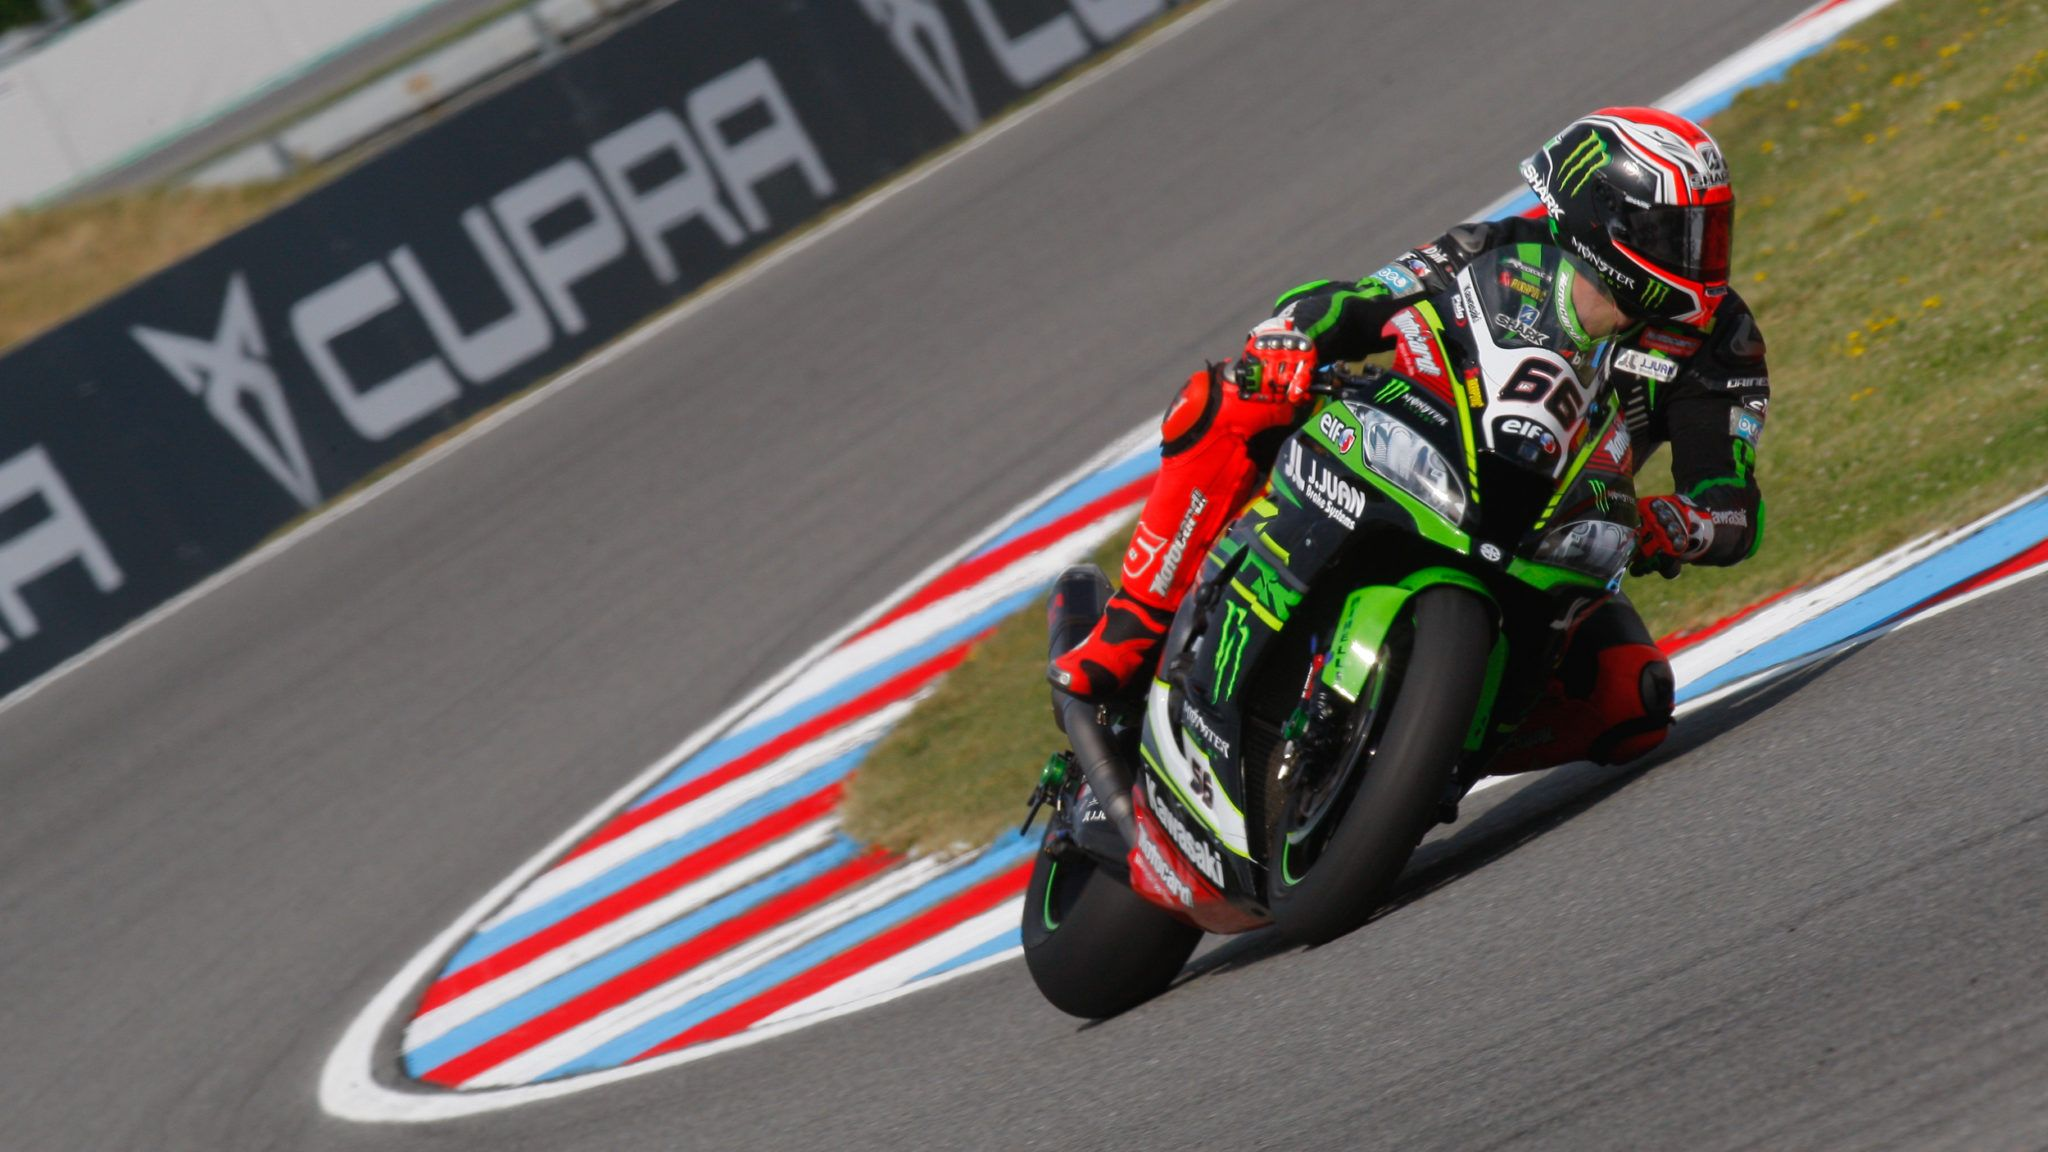 SBK –Sykes and Kawasaki to finish sporting relation at the end of 2018